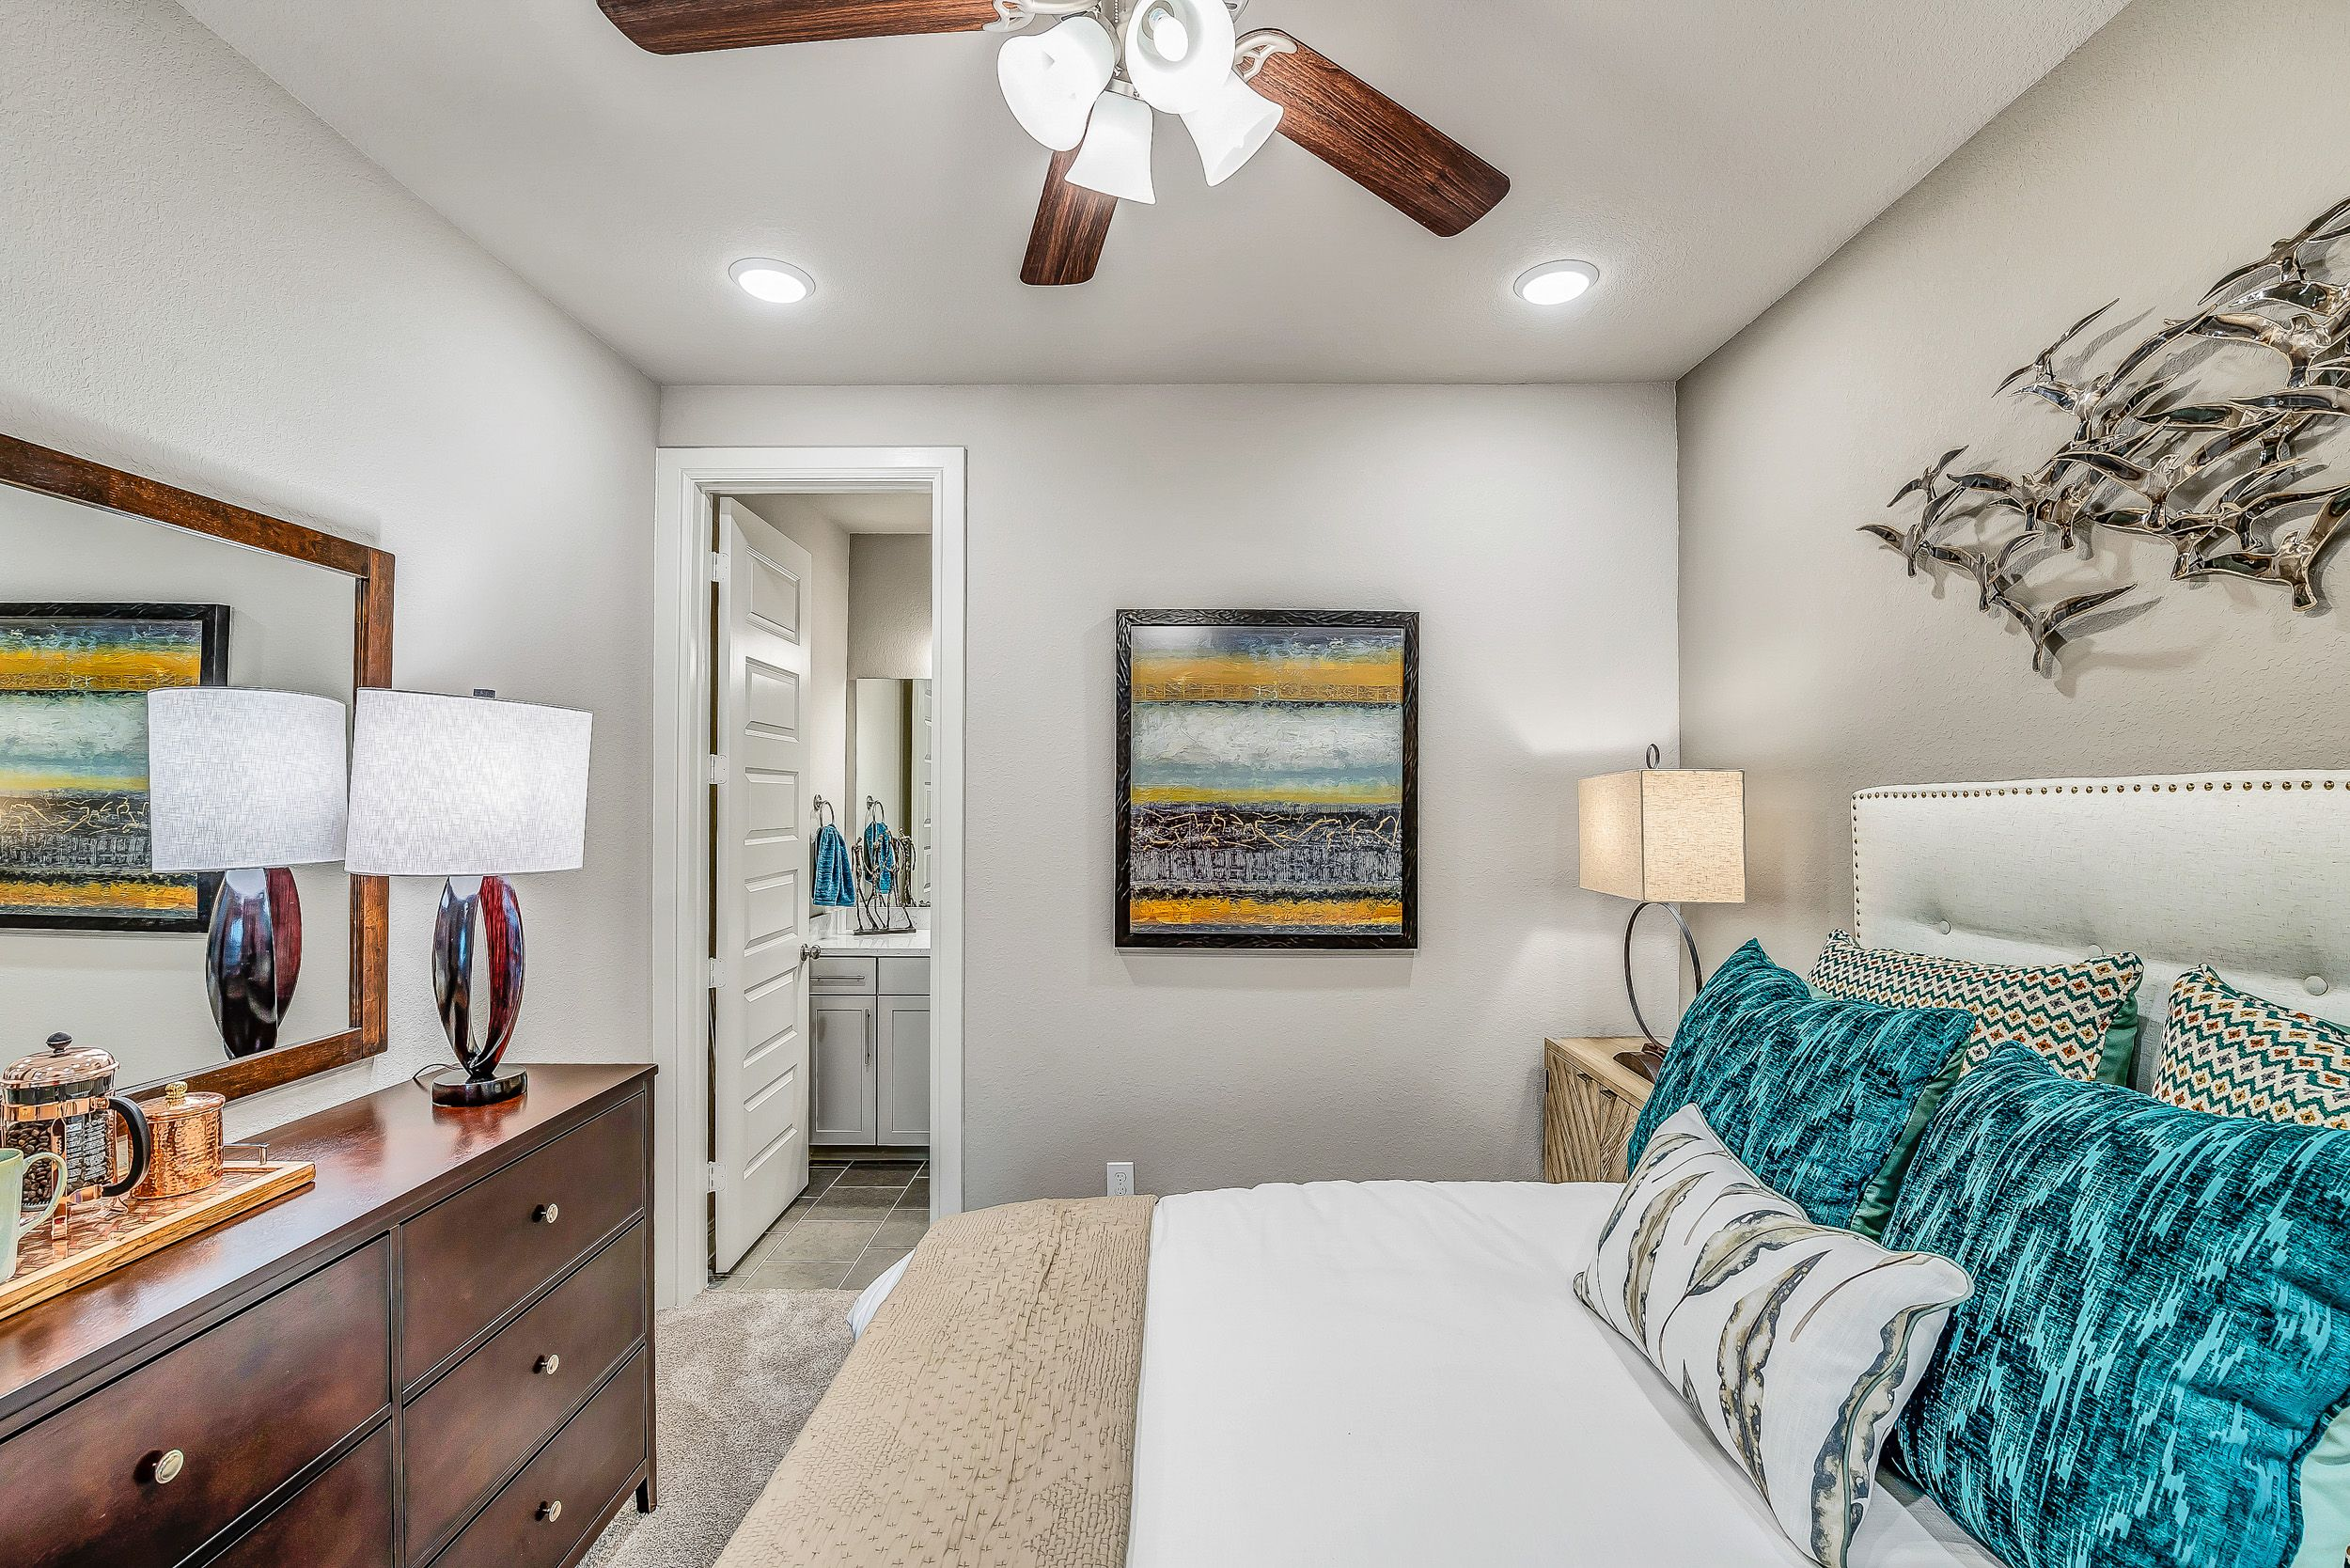 Pin by Taylor Morrison Houston on Cane Islands New homes